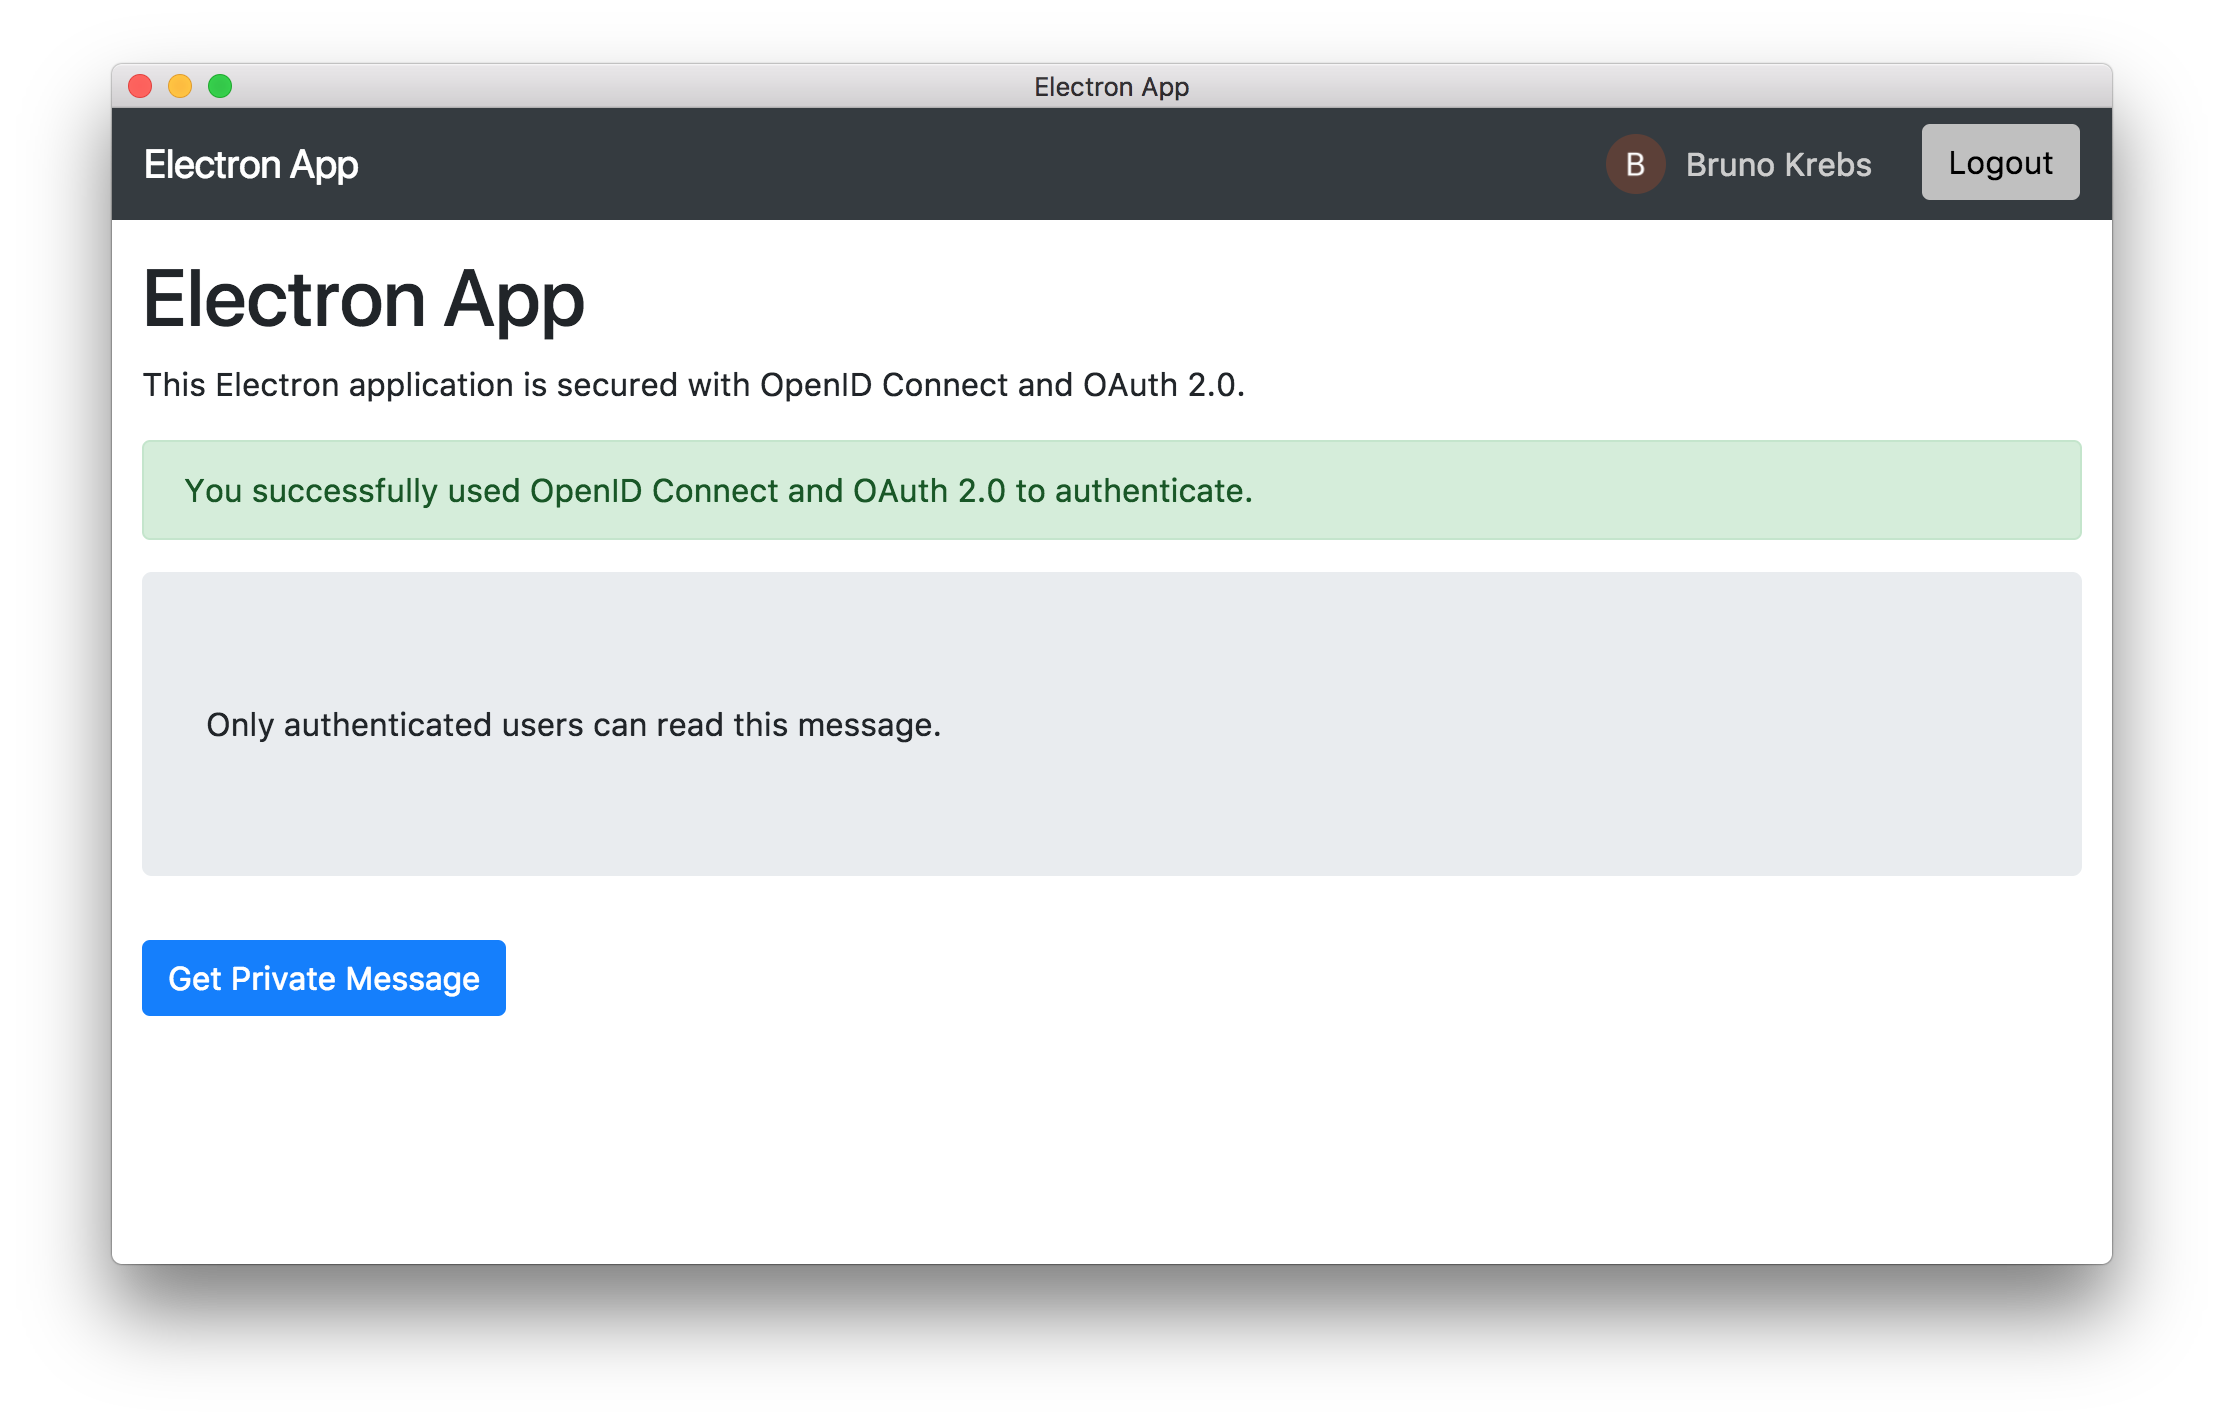 Build and Secure an Electron App - OpenID, OAuth, Node js, and Express